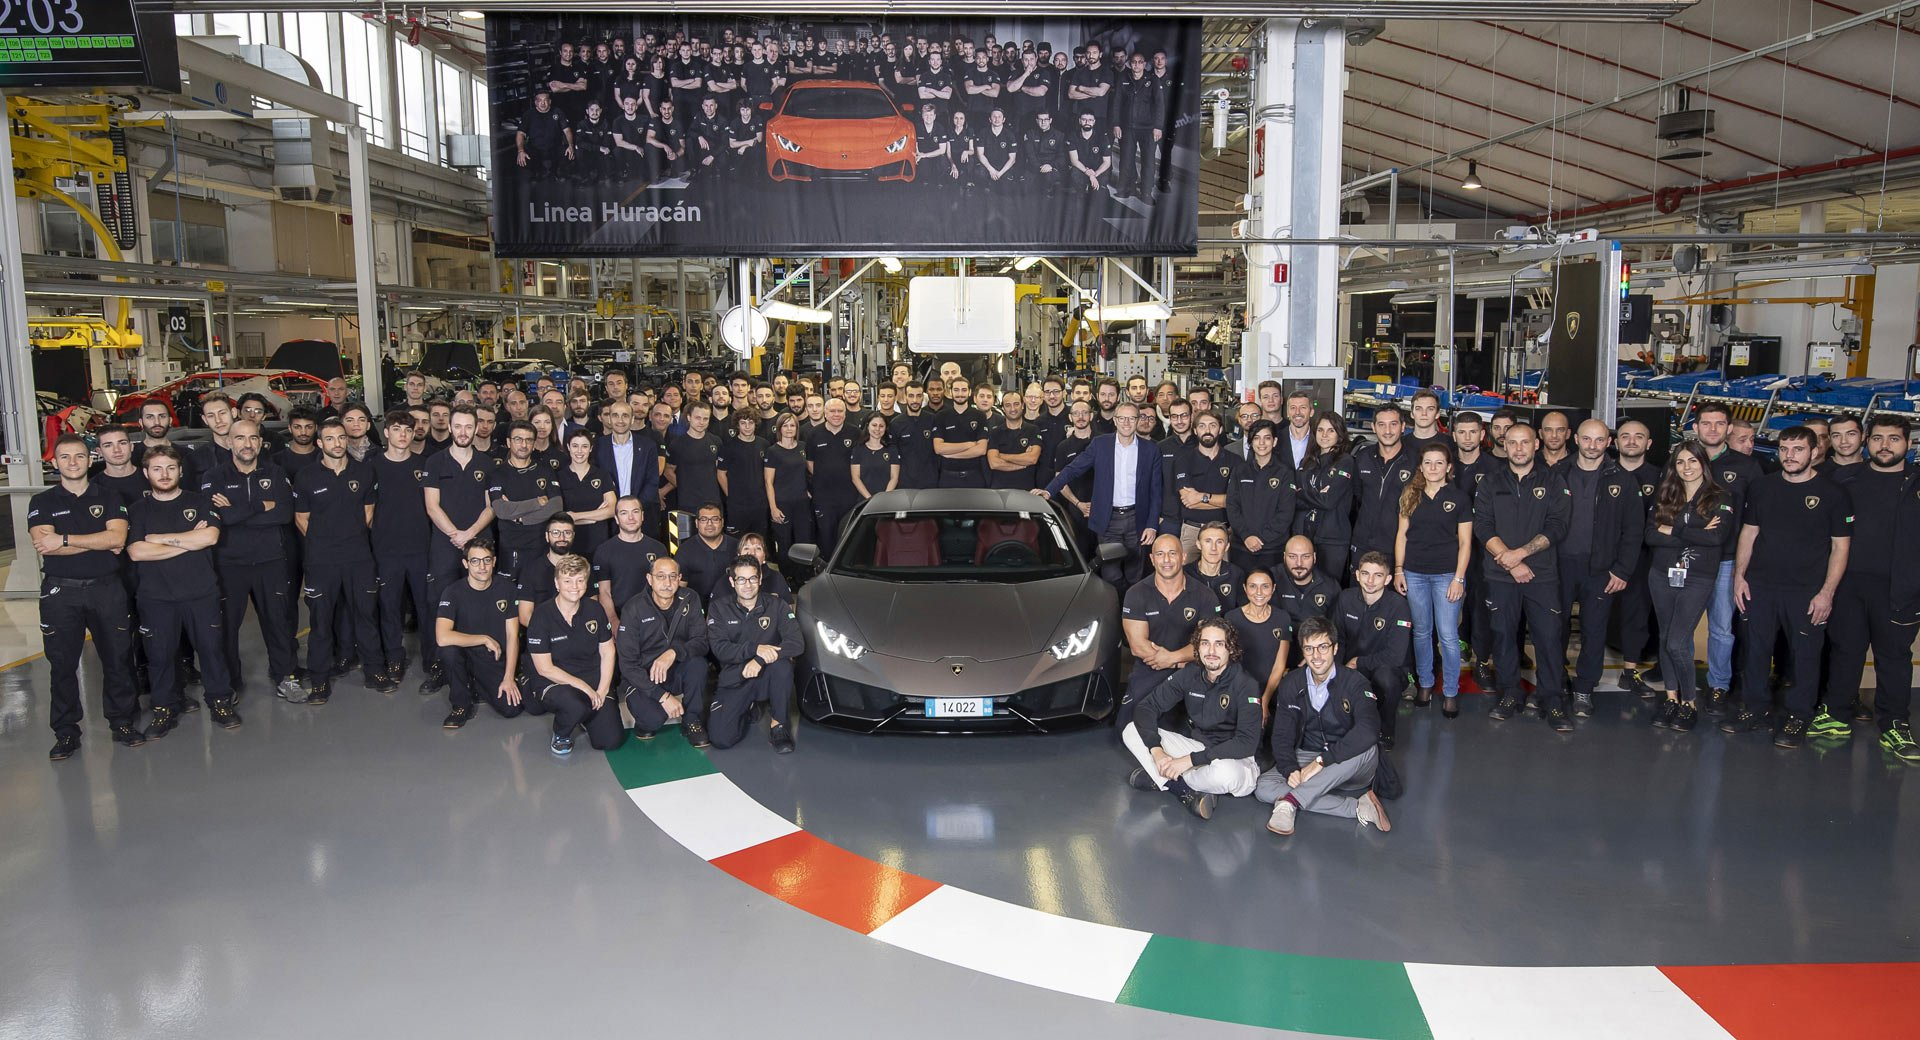 afcb7a0d-lamborghini-huracan-production